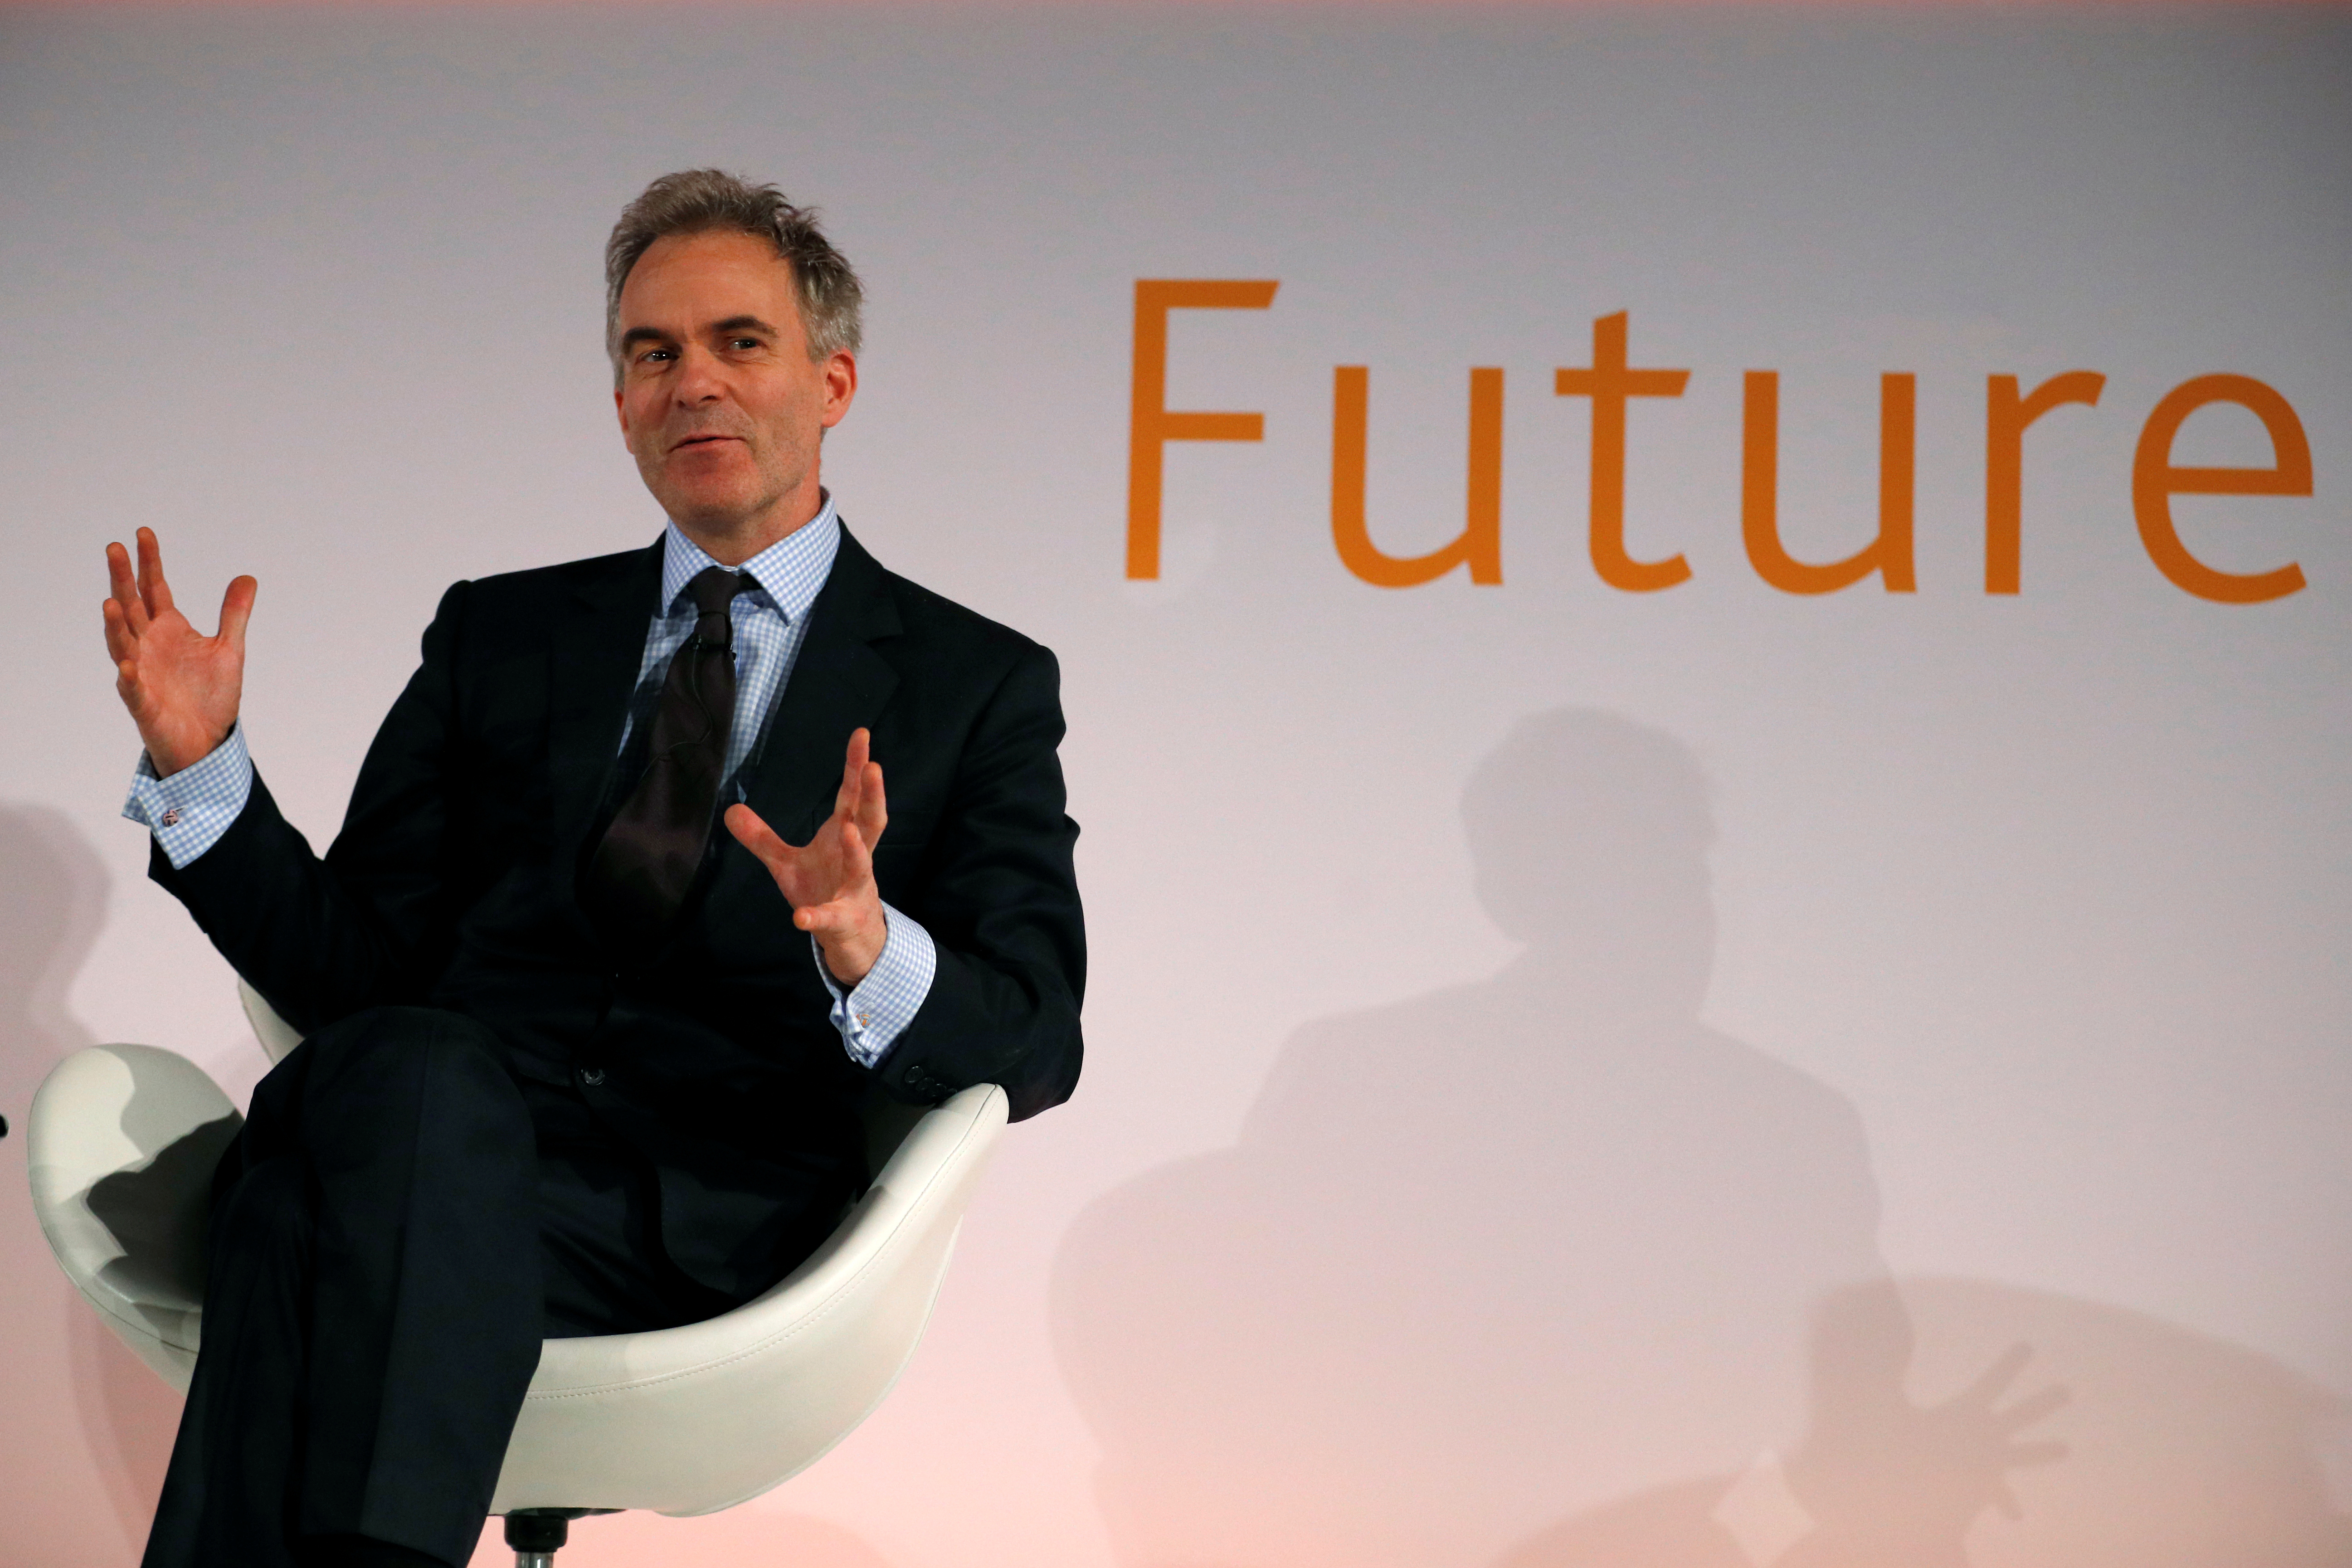 Bank of England Deputy Governor Ben Broadbent speaks at the 'Future Forum 2017' event in St George's Hall, Liverpool, Britain November 16, 2017.  REUTERS/Phil Noble/File photo